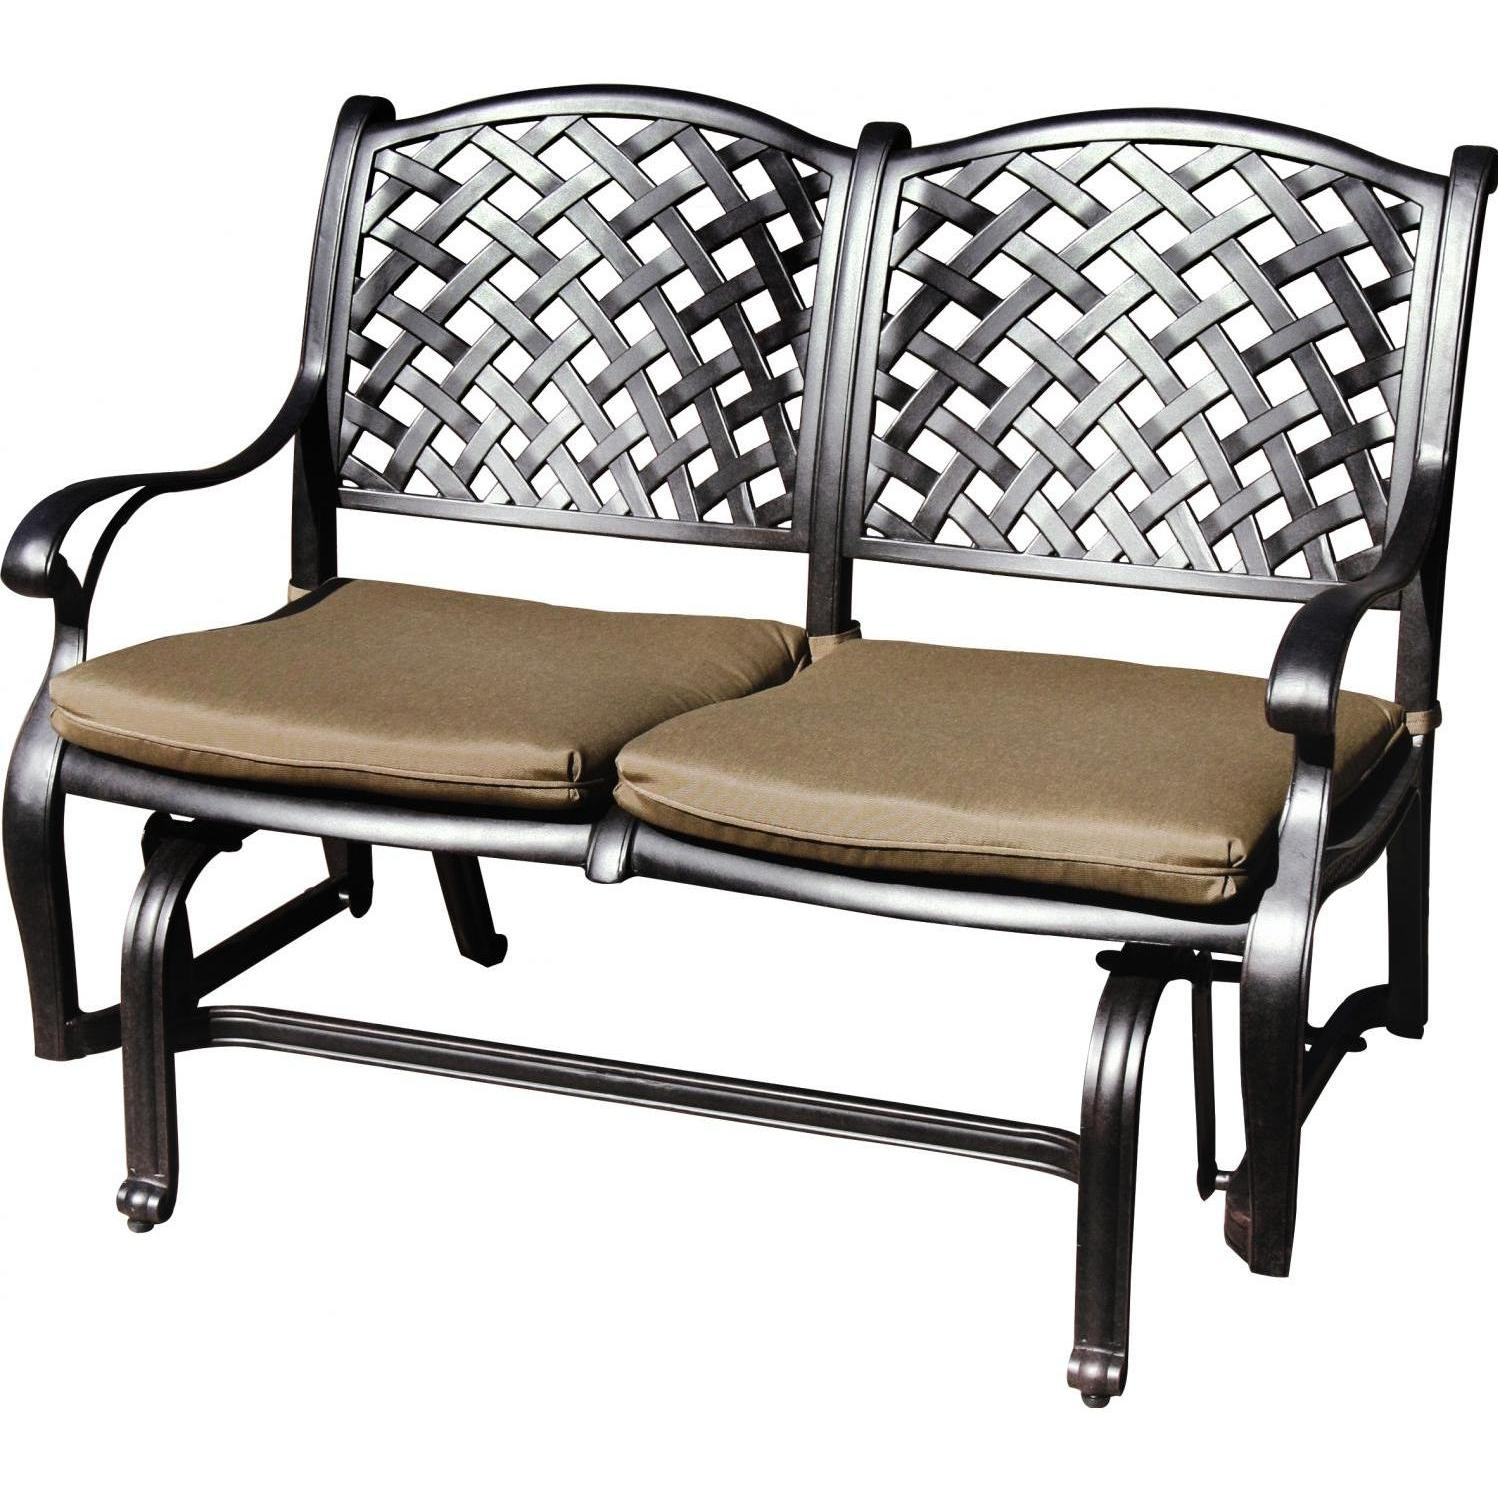 Darlee Nassau Cast Aluminum Patio Bench Glider Intended For Glider Benches With Cushions (View 5 of 25)